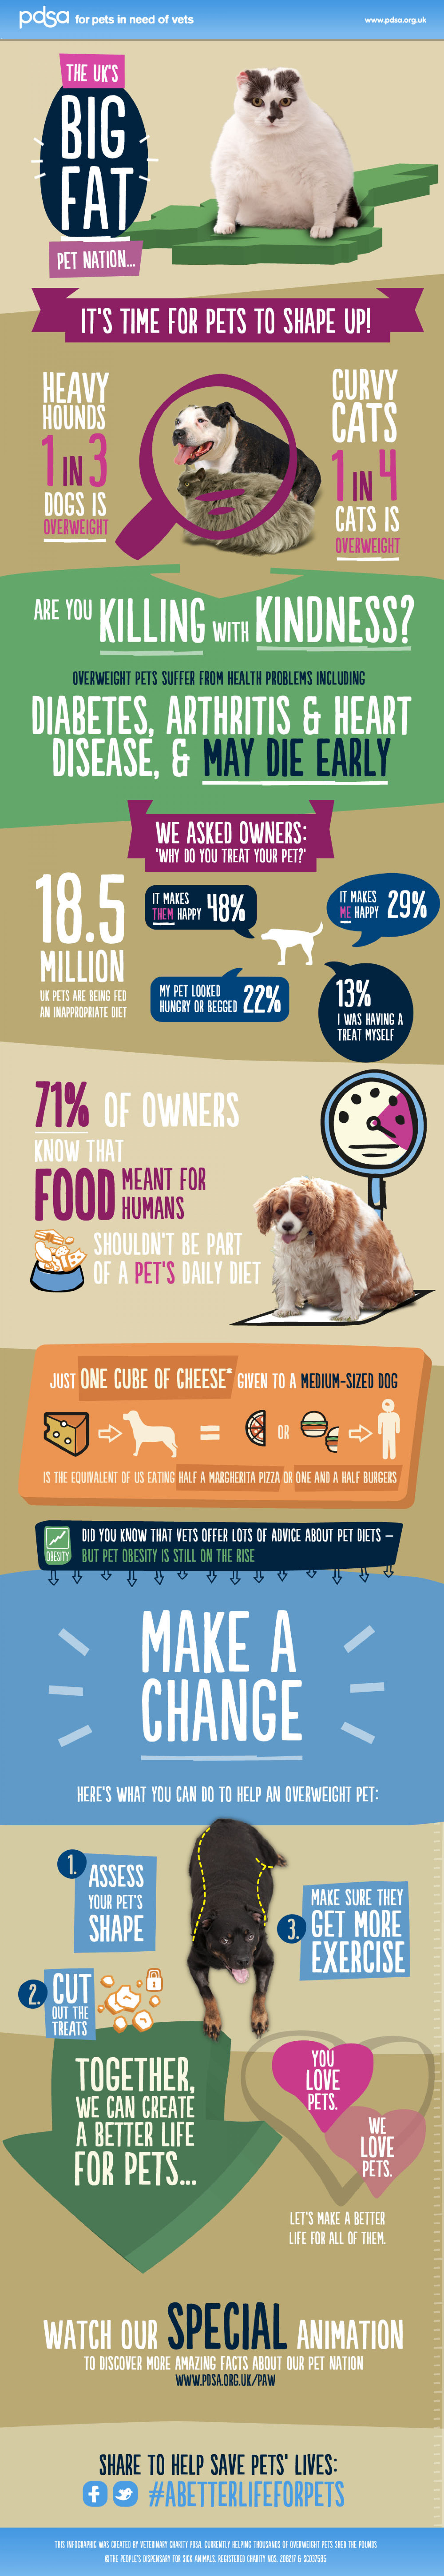 Big Fat Pet Nation: Obese Pets in The UK Facts Infographic